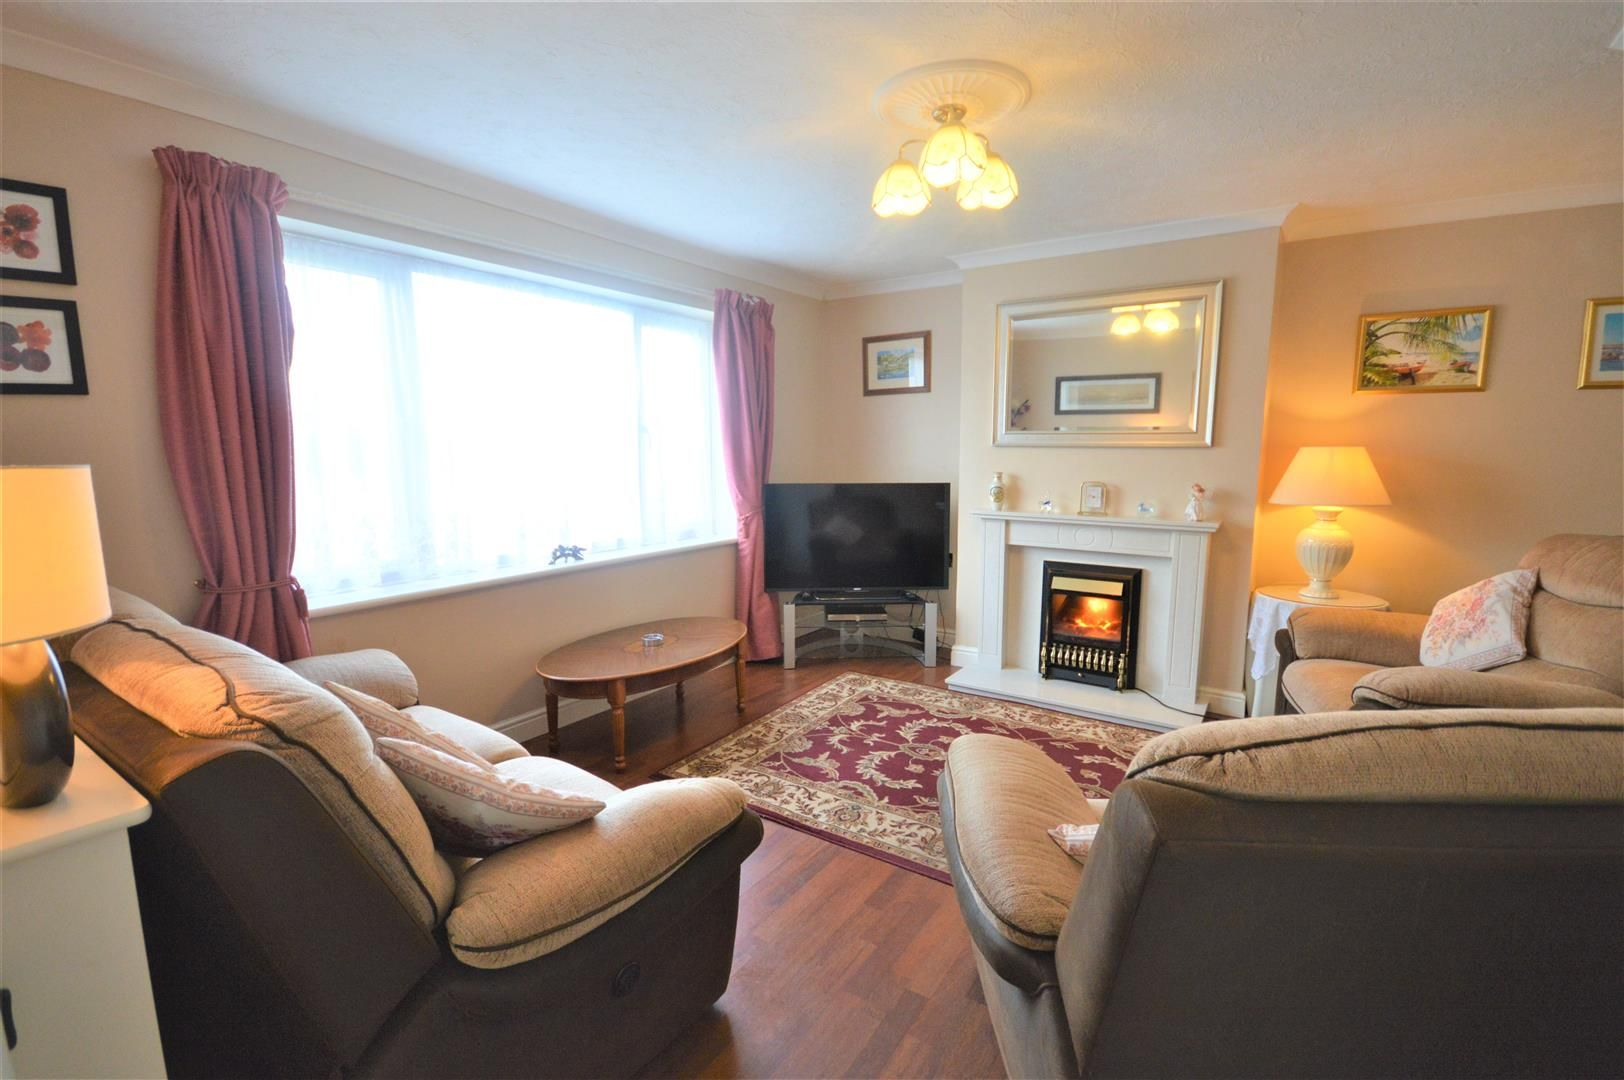 4 bed detached for sale in Weobley  - Property Image 2